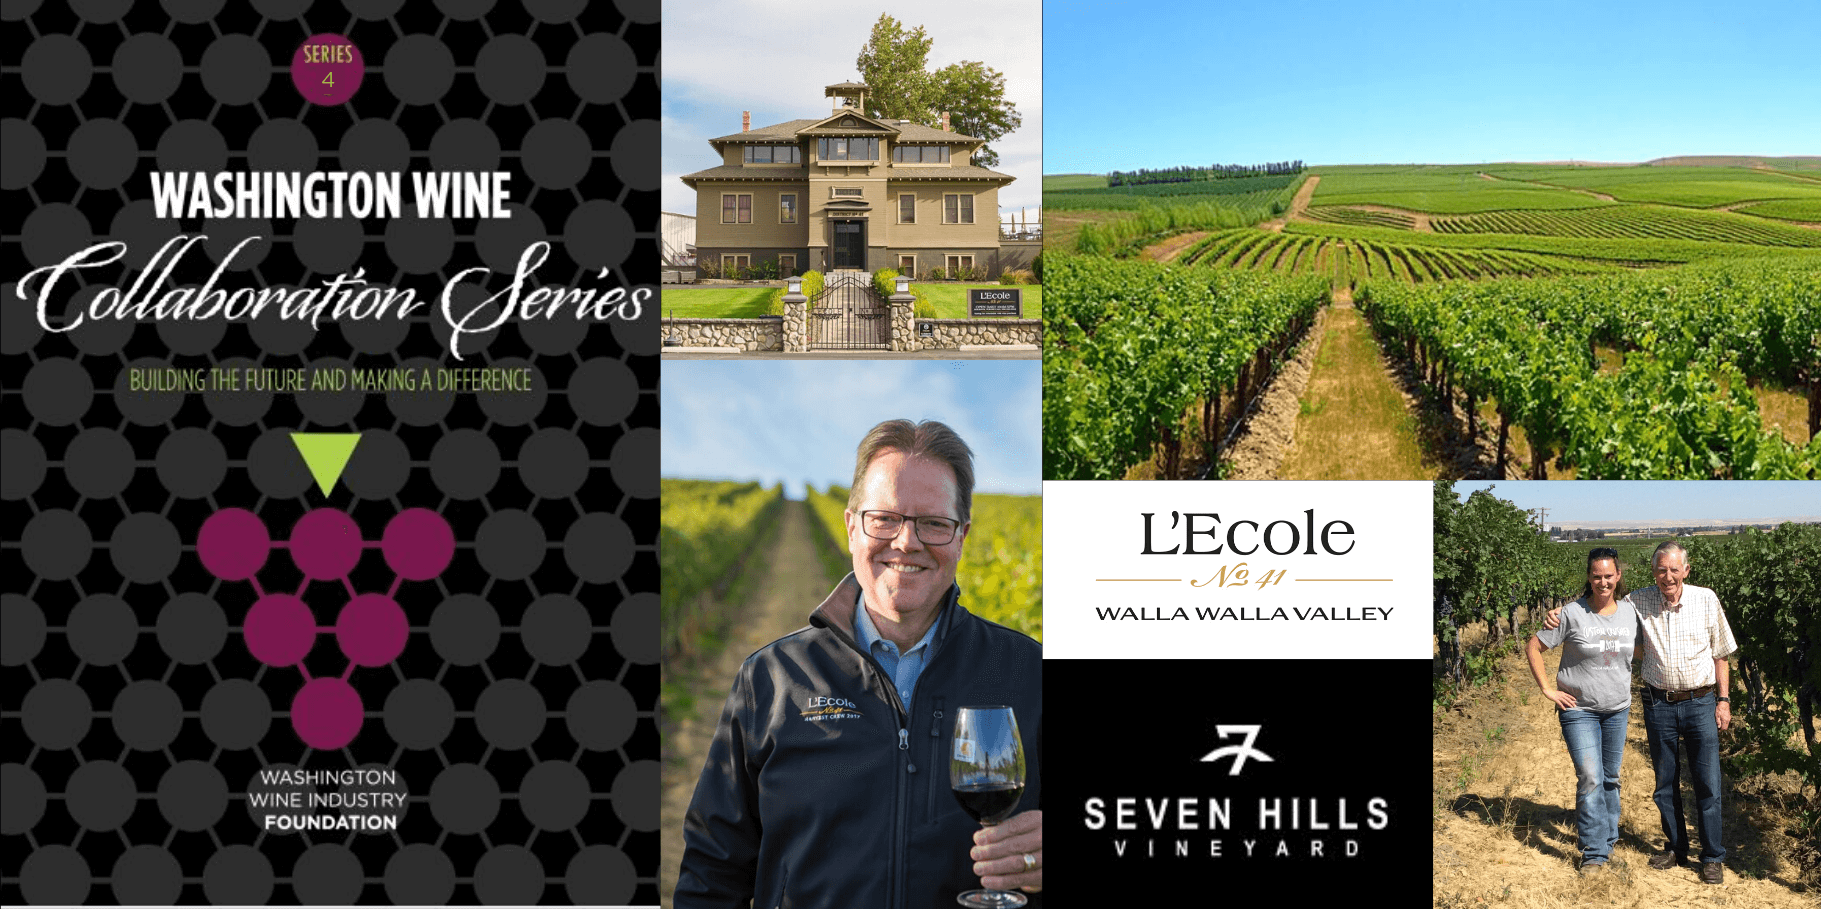 Washington Wine Collaboration Series #4 label + L'Ecole No 41 Walla Walla Valley logo + Seven Hills Vineyard Logo + pictures of winemaker in vineyard with glass of wine, L'Ecole building, Seven Hills vineyard, and growers in their vineyard